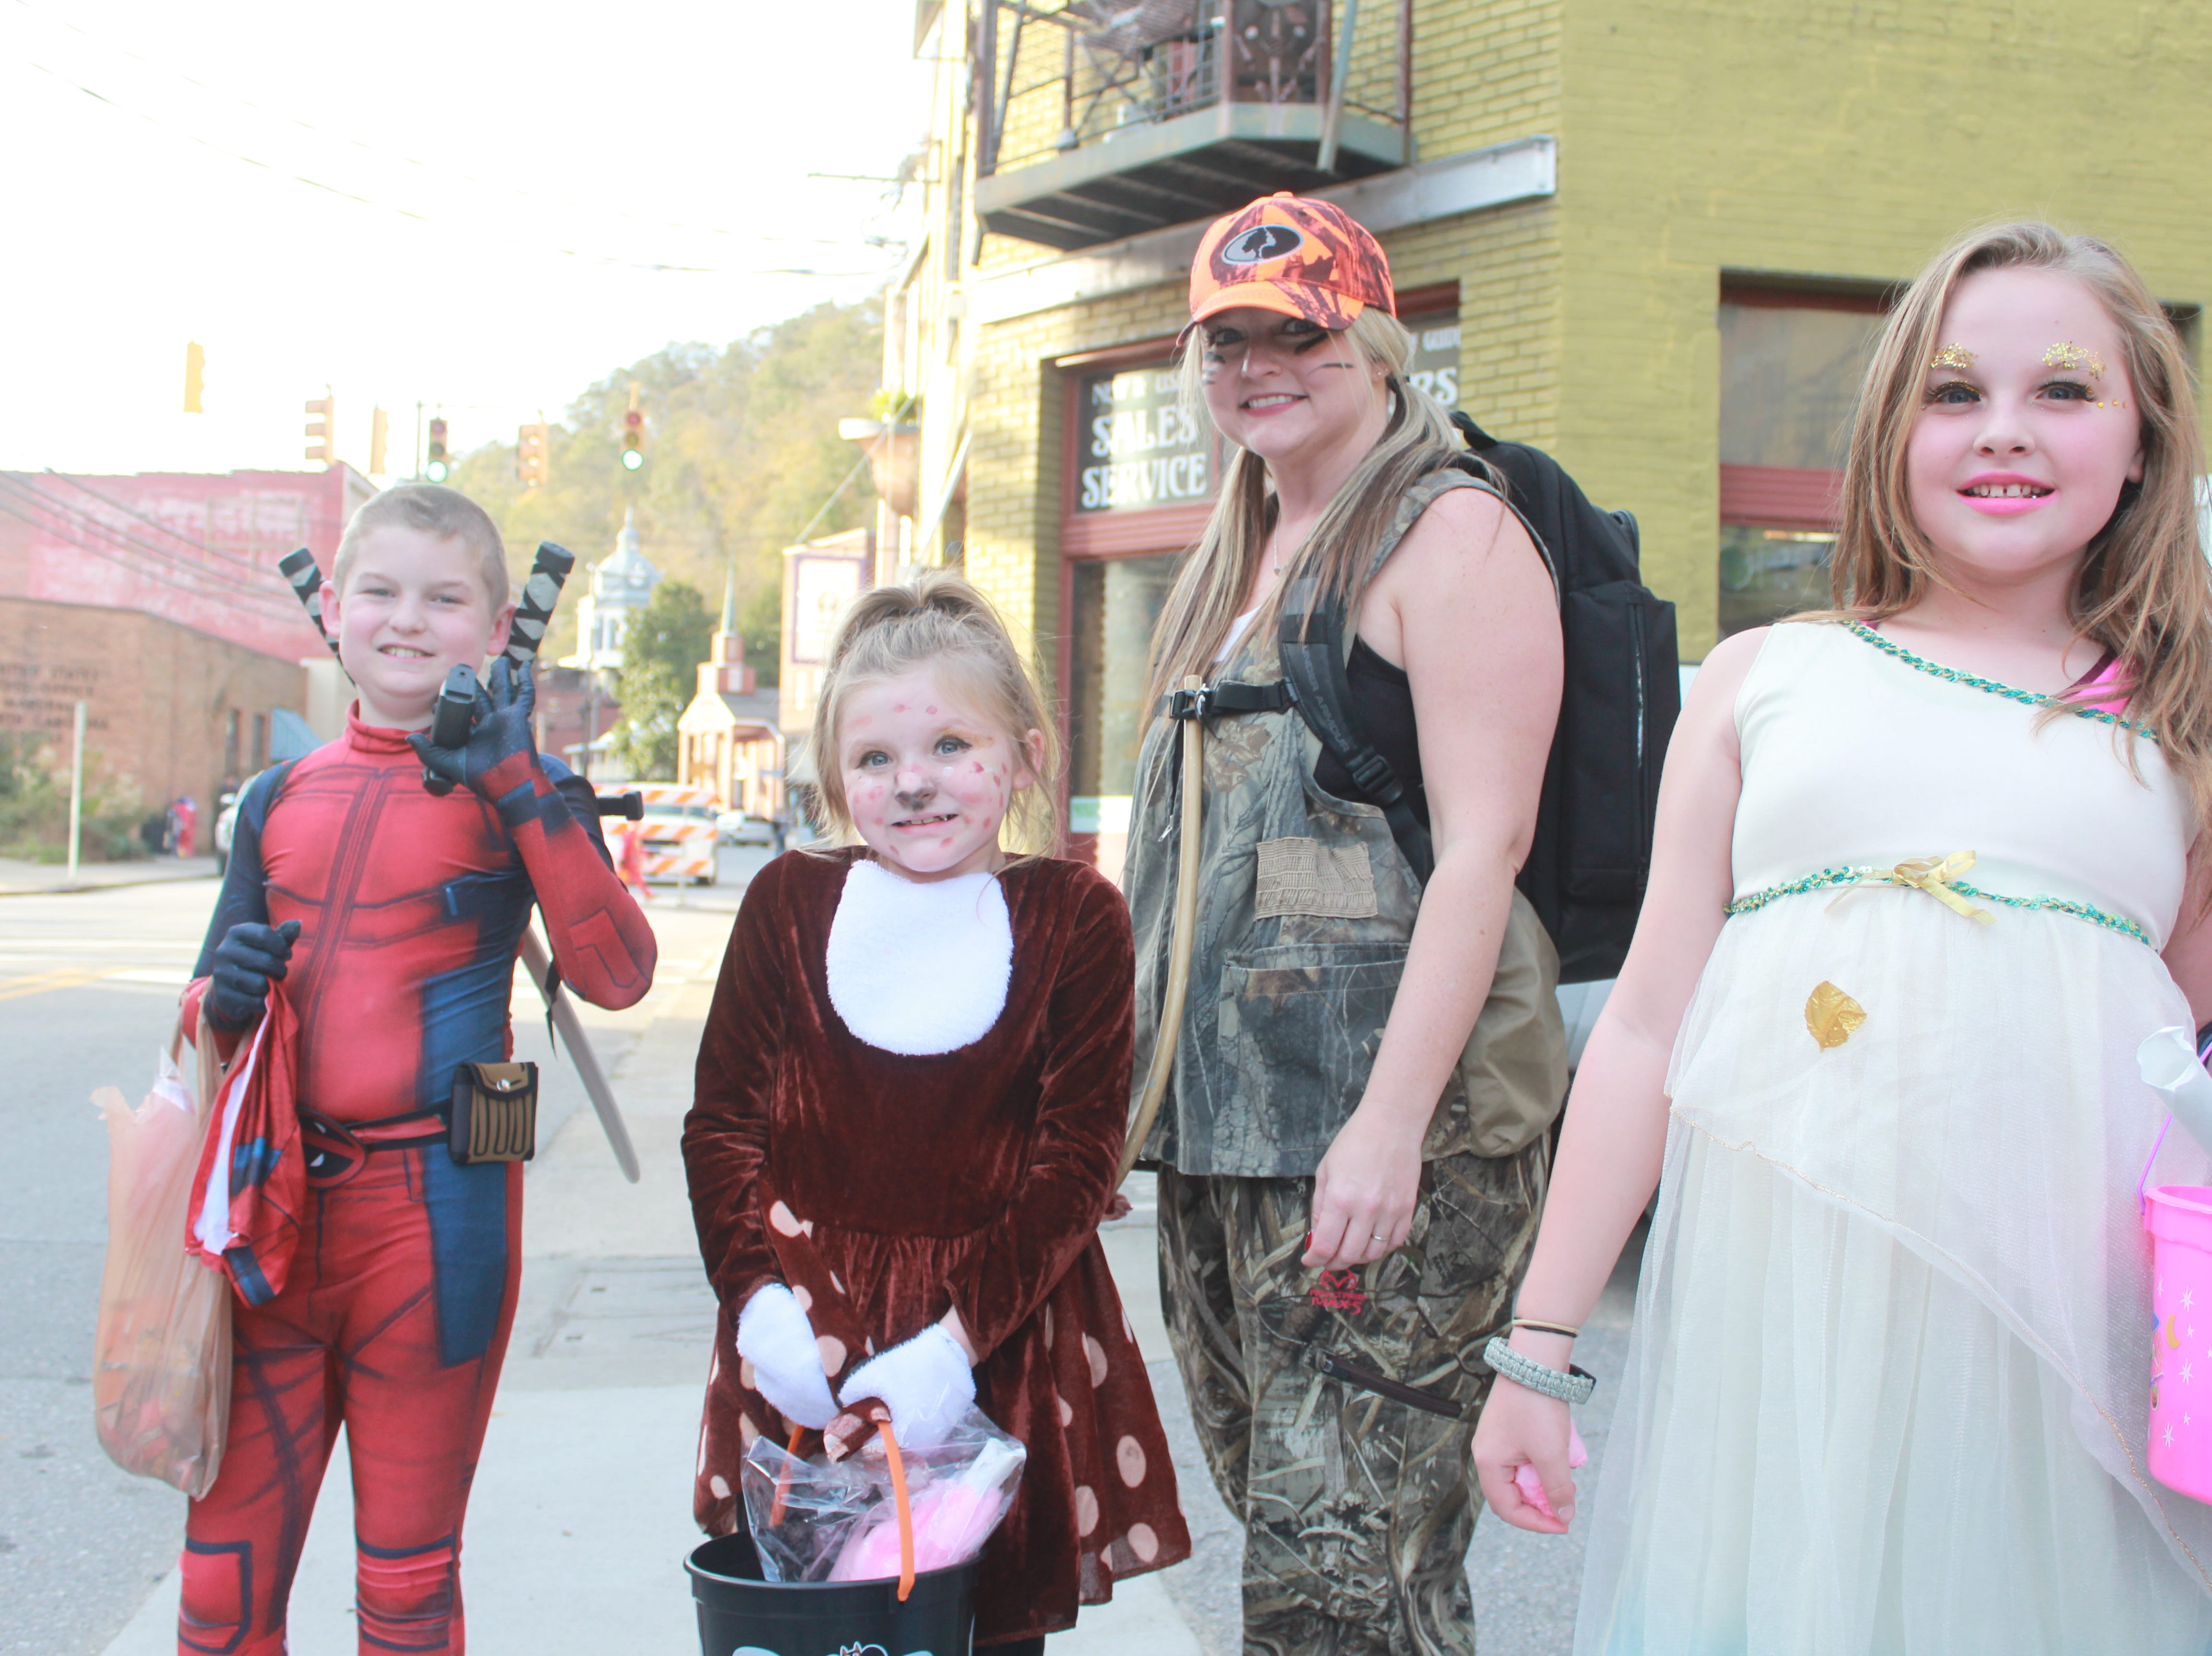 Ransom Ledford as Deadpool joined Aaliyah, Shelley and Gabby Phillips for some trick-or-treating in downtown Marshall.